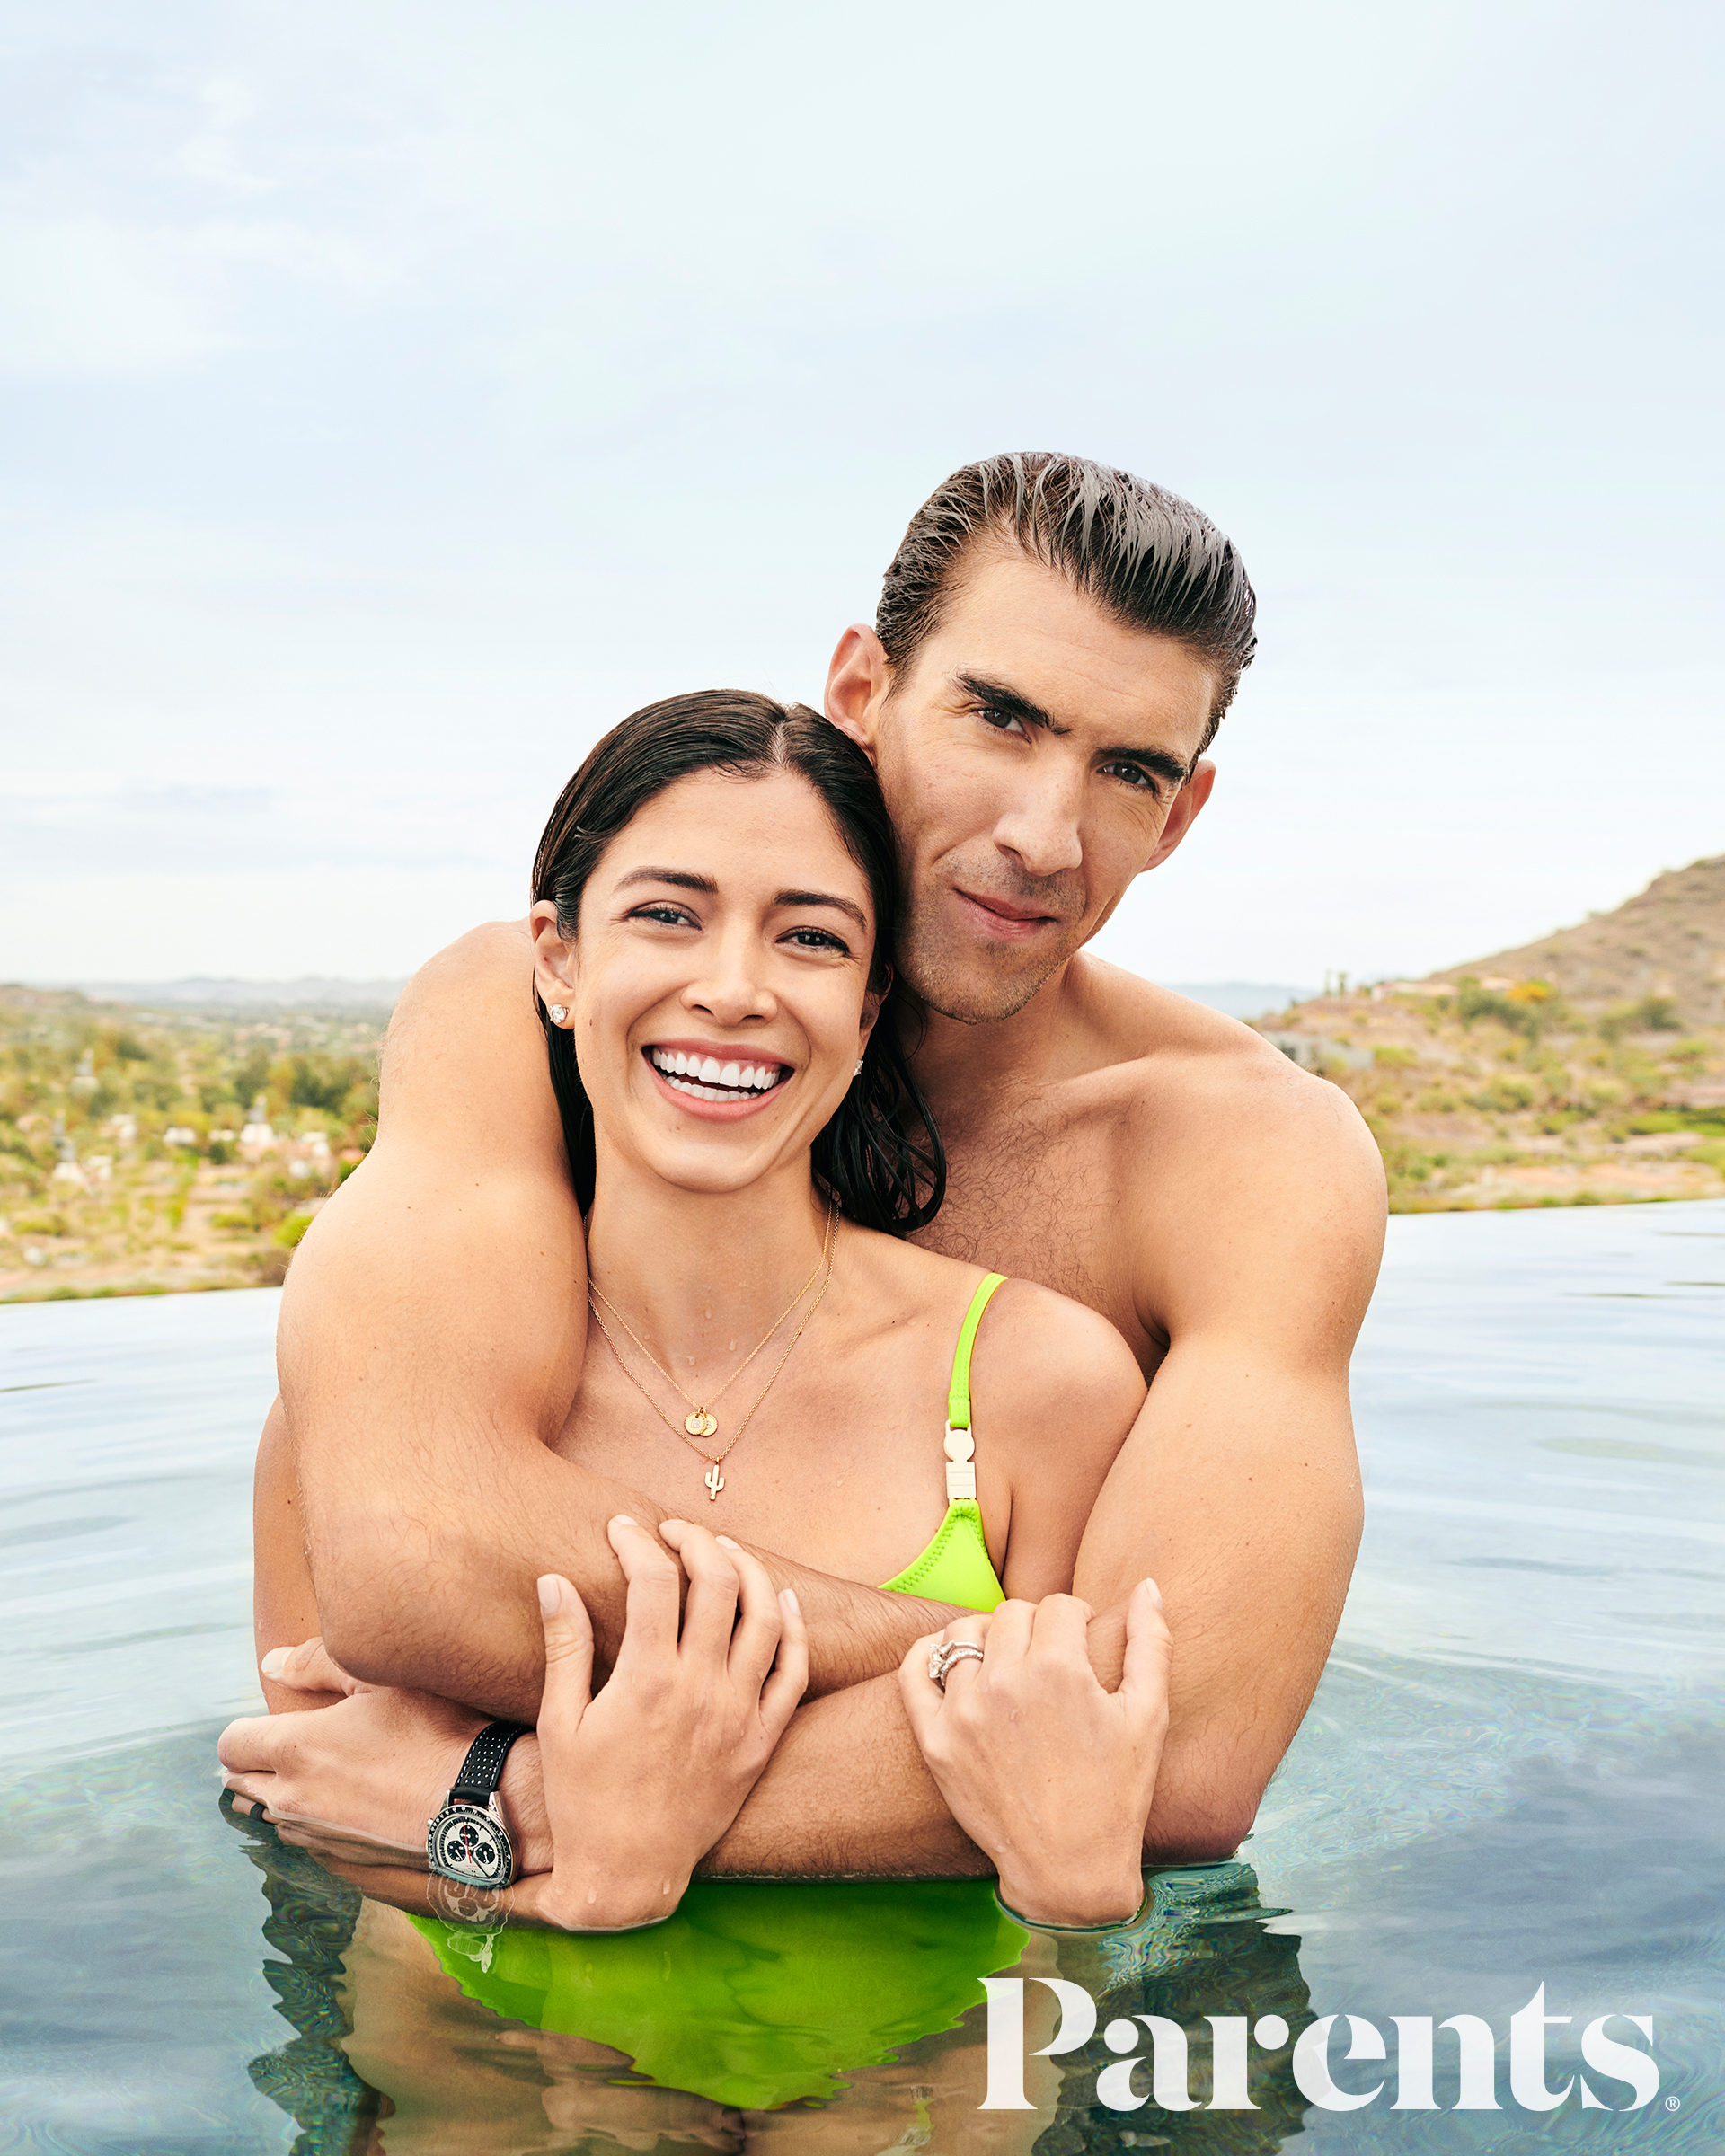 Michael Phelps Supporting Pregnant Wife Nicole Johnson Ahead Baby No. 3 - Michael Phelps and pregnant wife Nicole Johnson for the July 2019 issue of 'Parents' magazine.